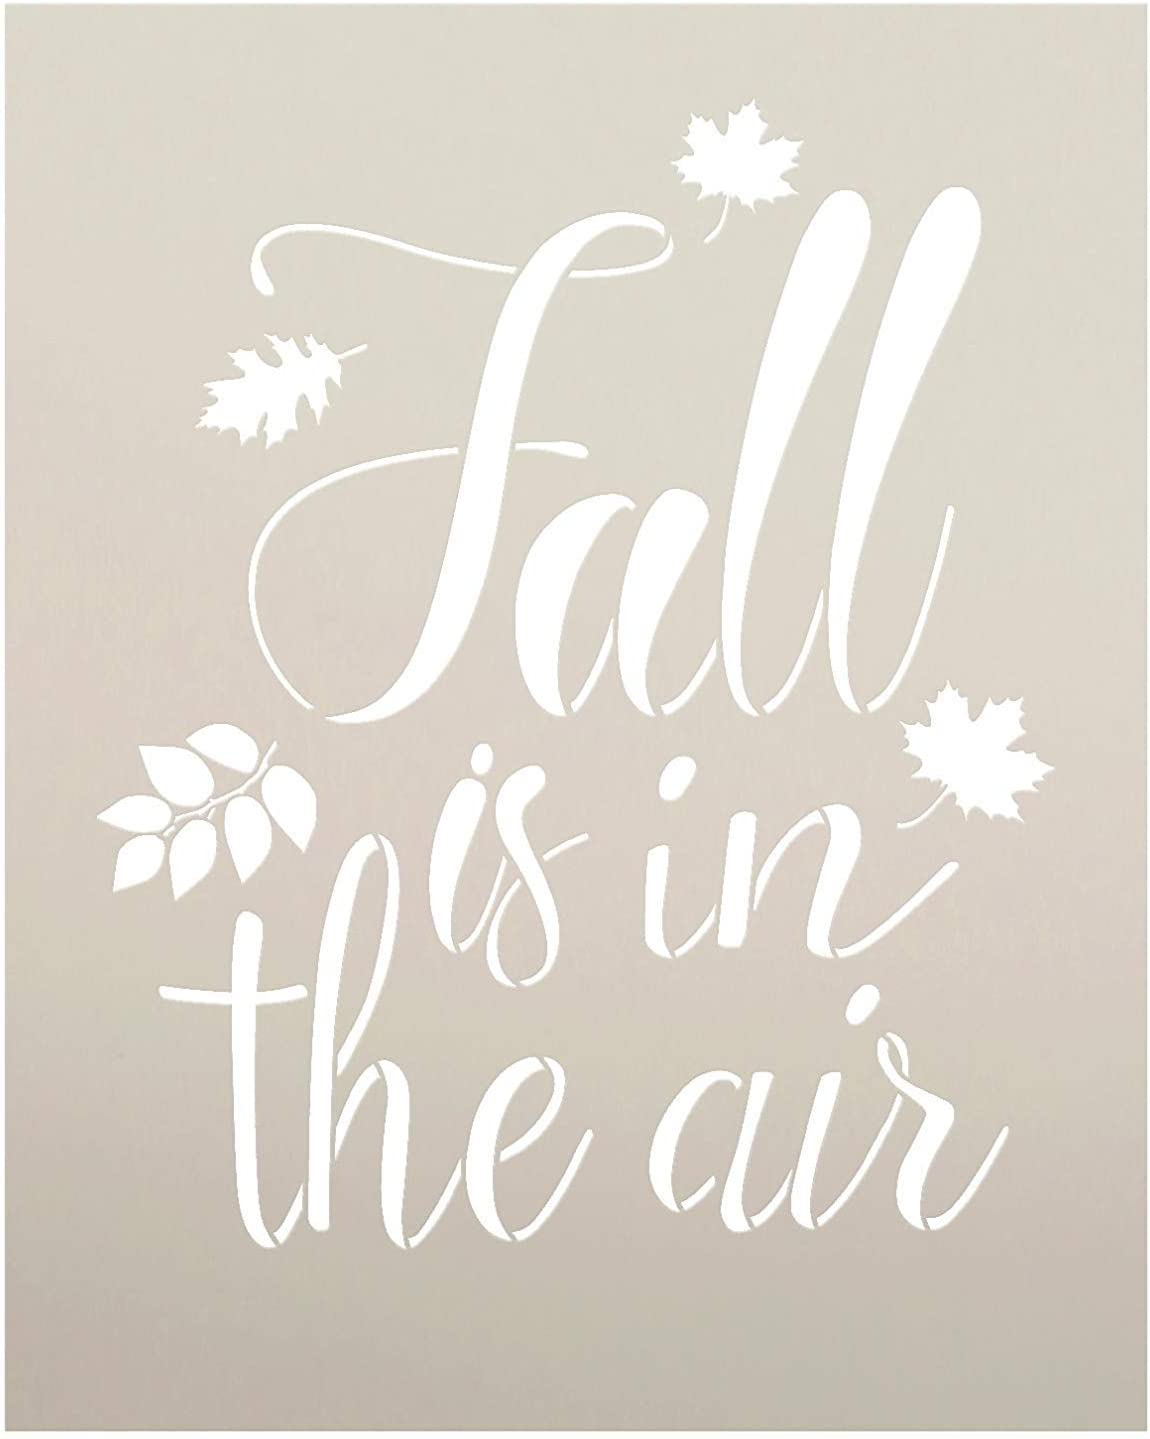 "Fall is in The Air Stencil by StudioR12 | Script Letters | Reusable Word Template for Painting on Wood | DIY Home Decor Sign | Fall Leaves Autumn |Chalk, Mixed Media and Craft |Select Size (8"" x 10"")"